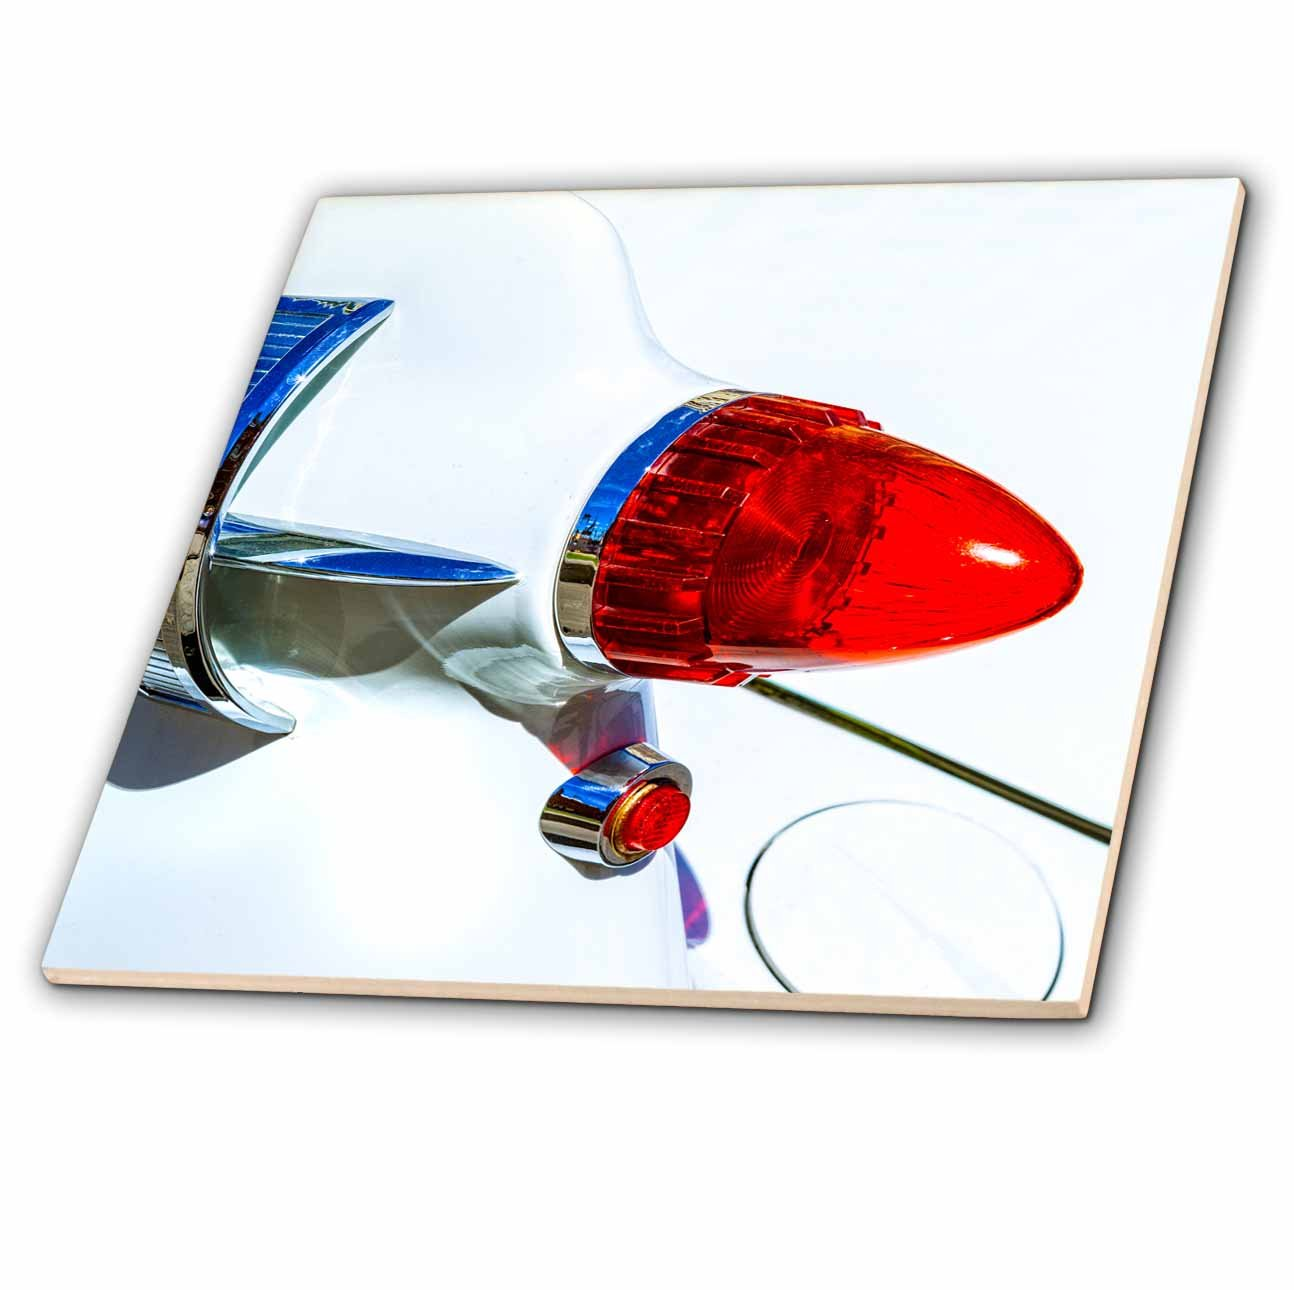 3dRose Alexis Photography - Transport Road - Red rear light, white hood of a vintage luxury car - 6 Inch Glass Tile (ct_271952_6)